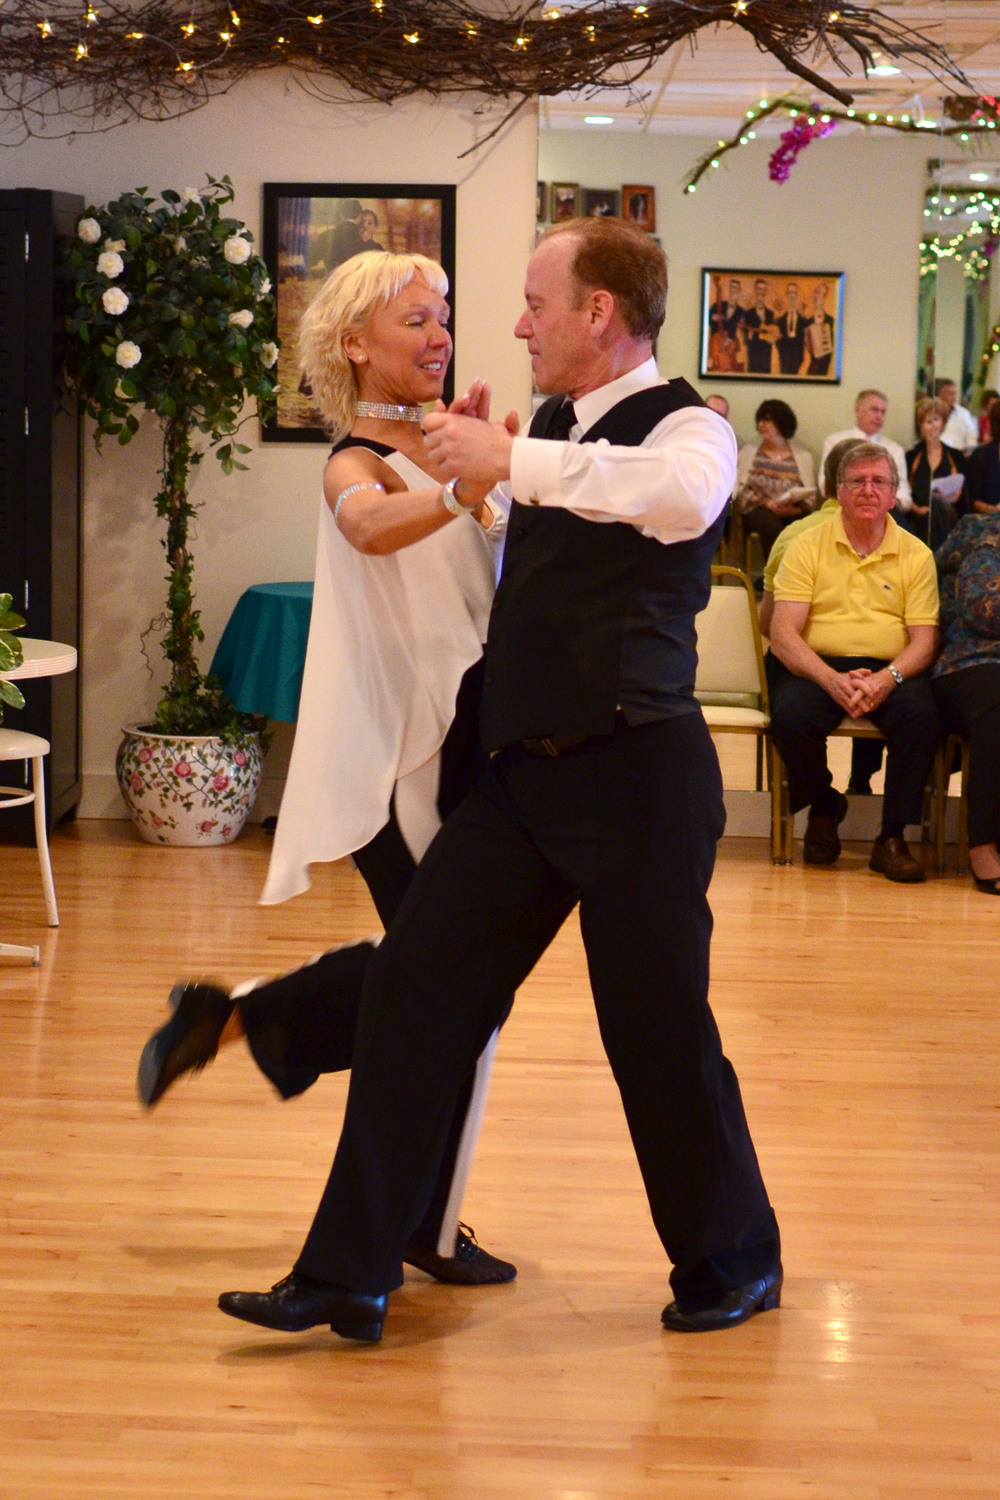 true-contact-sport-ballroom-dancing.jpg